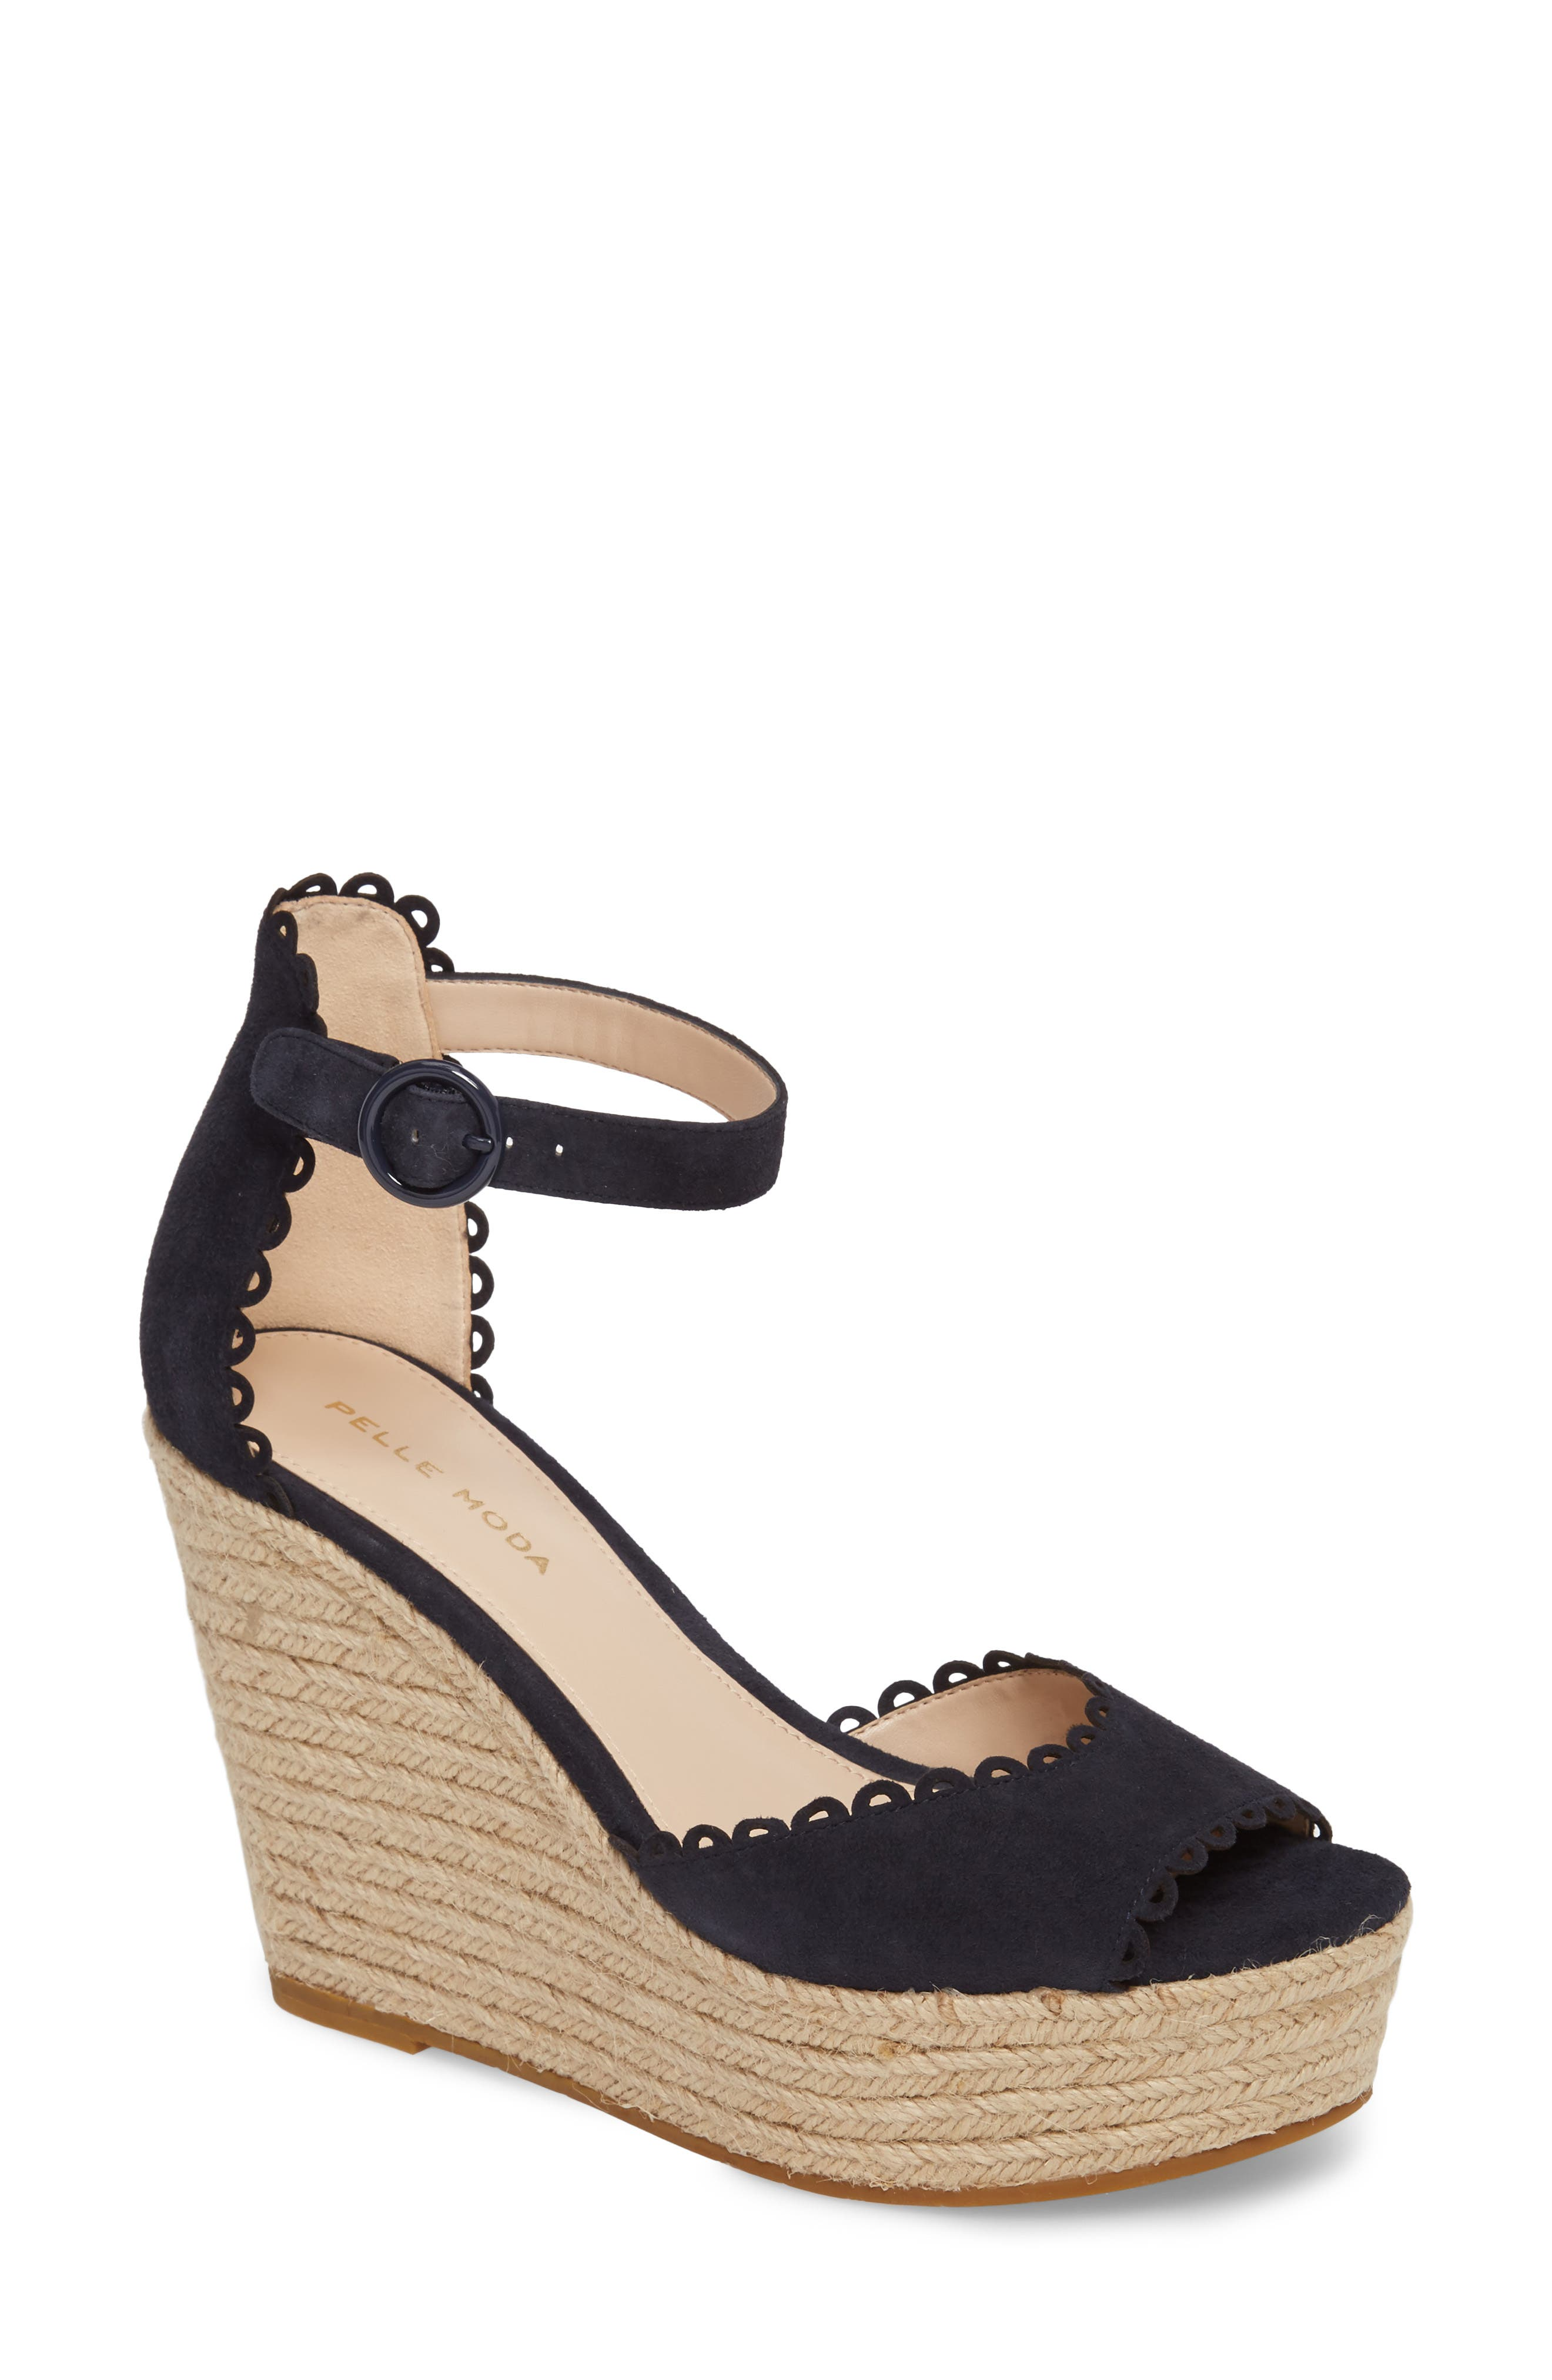 Pelle Moda Madra 91L10087 Fashion Shoes Hot Sale Cheapest Price Save Over 50%